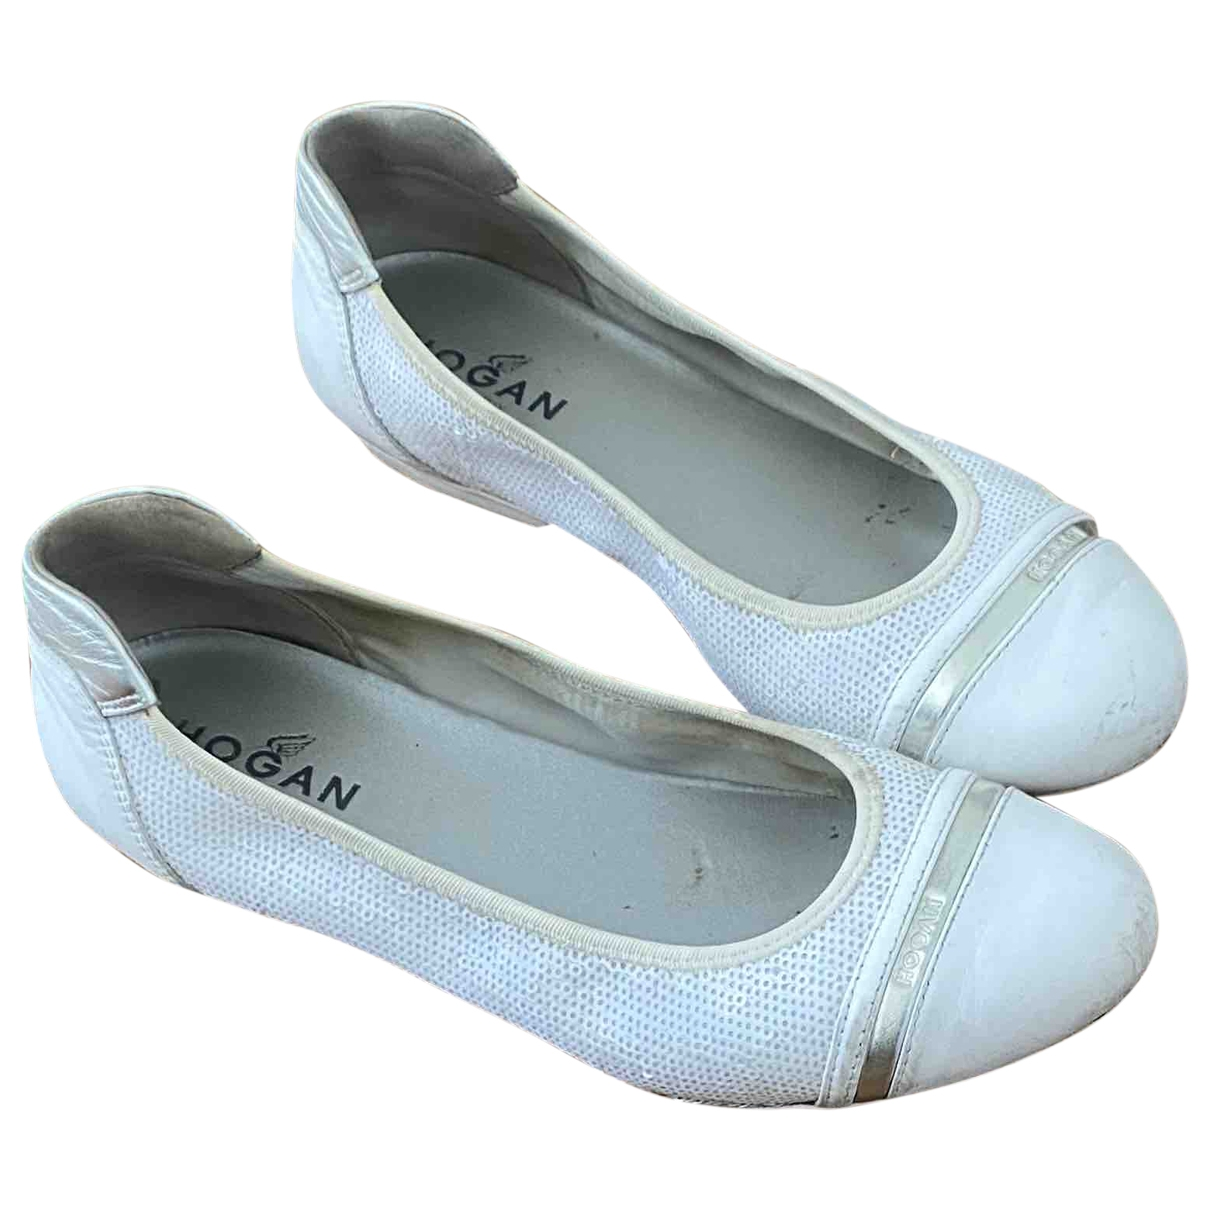 Hogan \N Ballerinas in  Weiss Leder